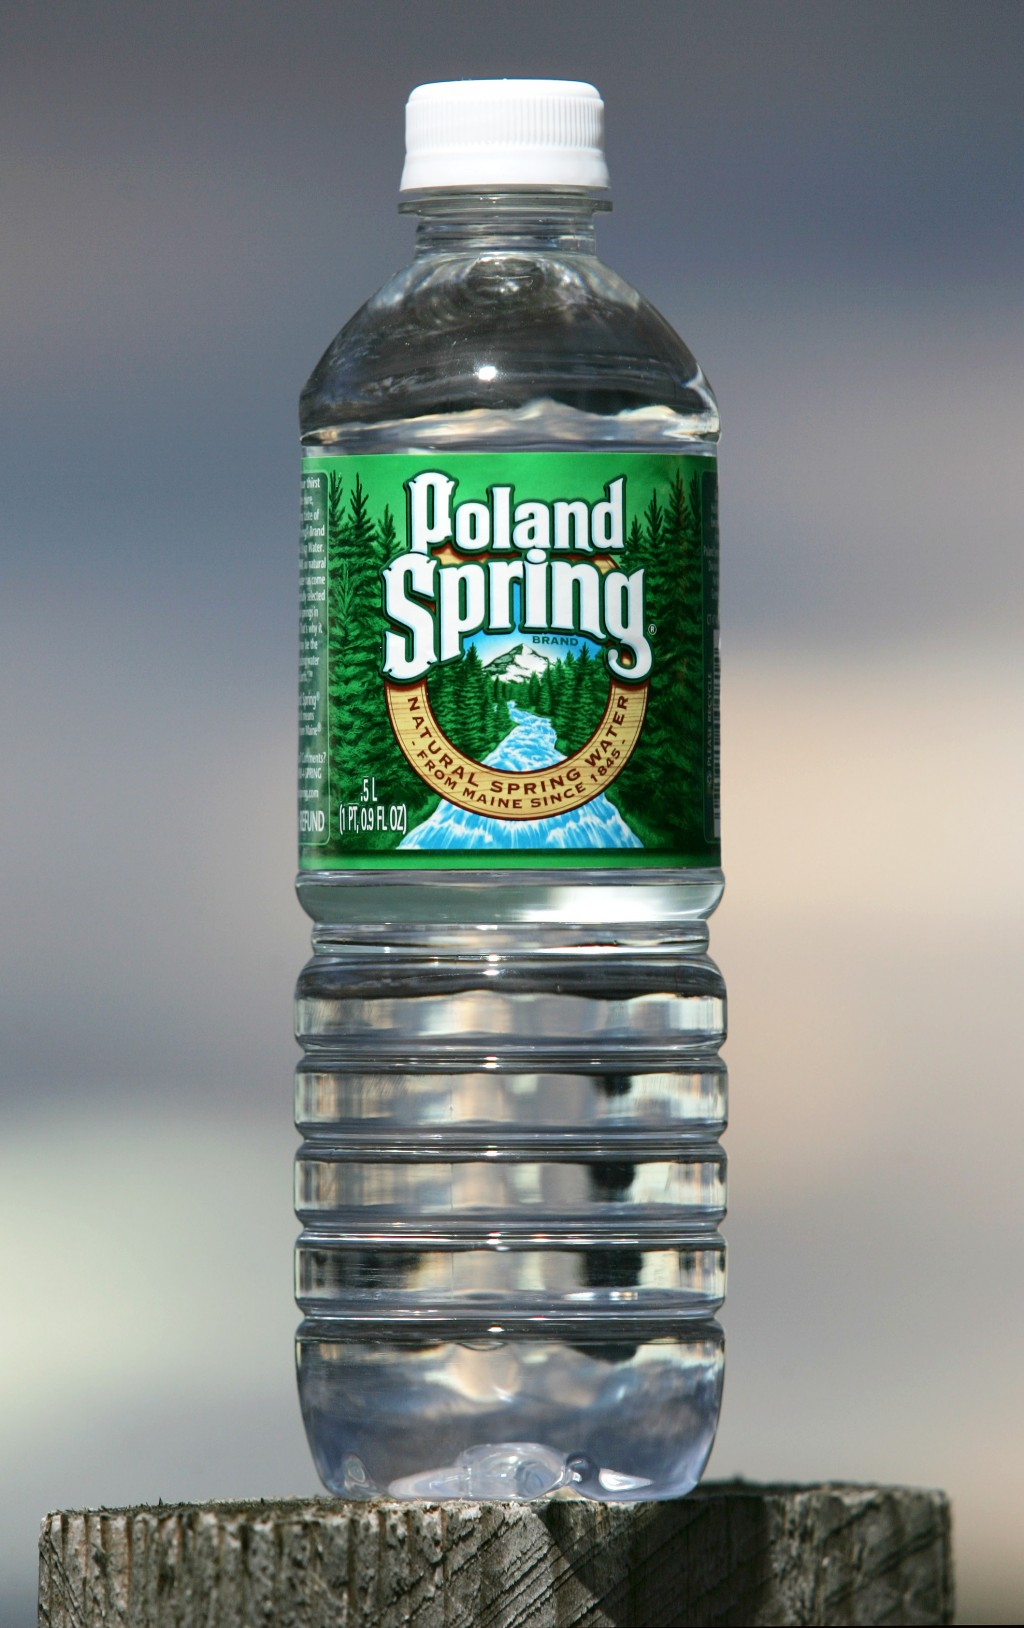 FILE - This Nov. 10, 2005, file photo shows a bottle of Poland Spring water in Fryeburg, Maine. The Maine-based company announced a plan on Monday, Ju